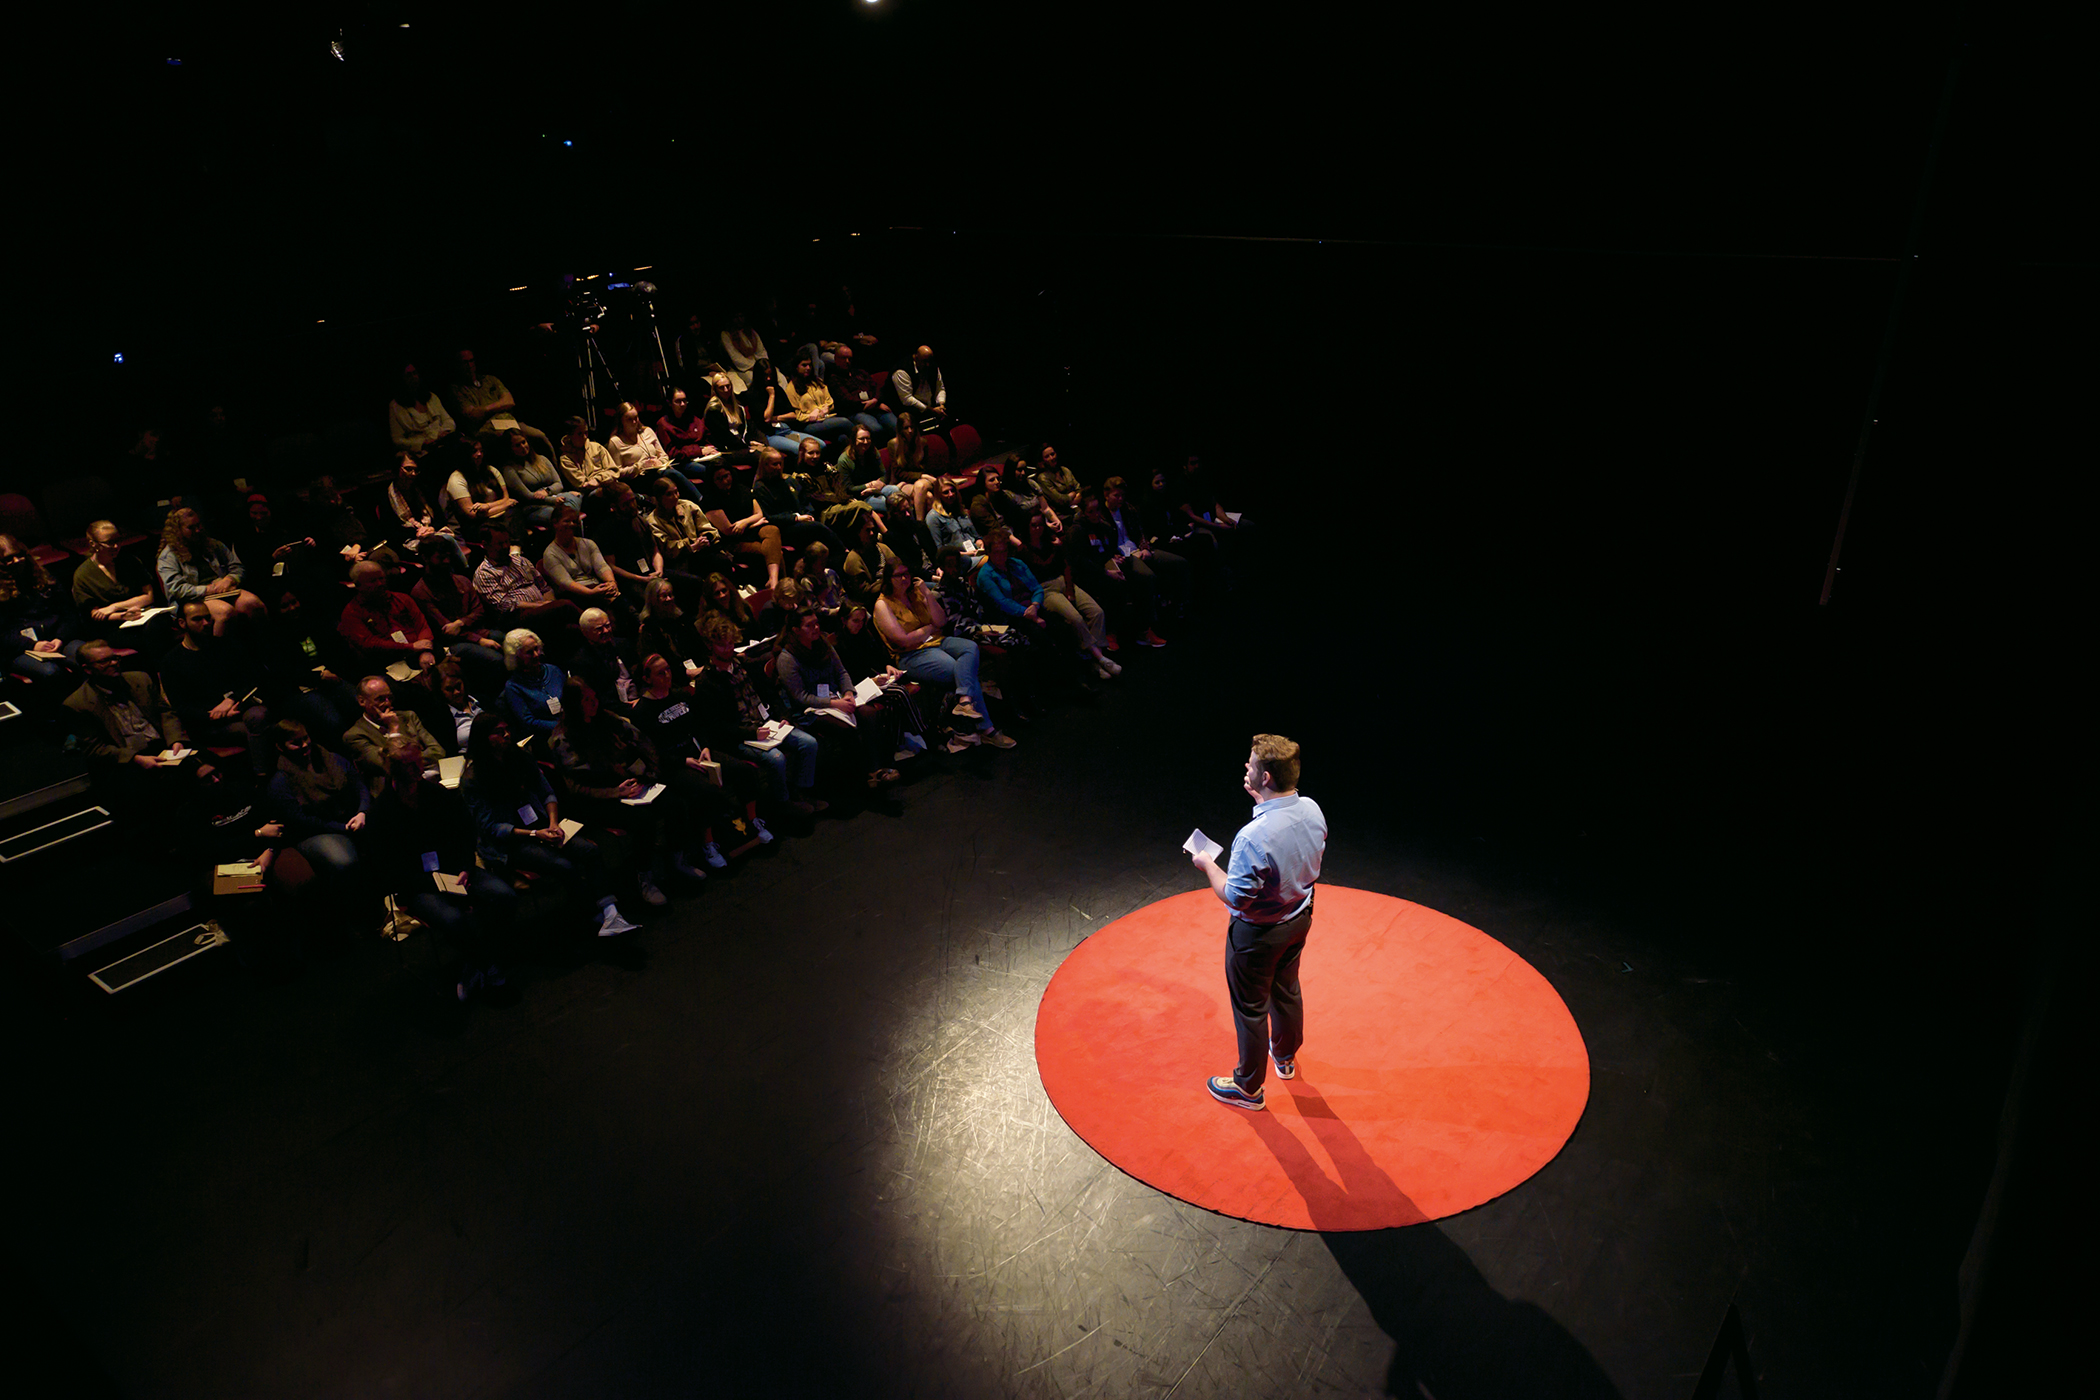 TEDx speaker Tom Stratton BA '20 in the Black Box Theatre.